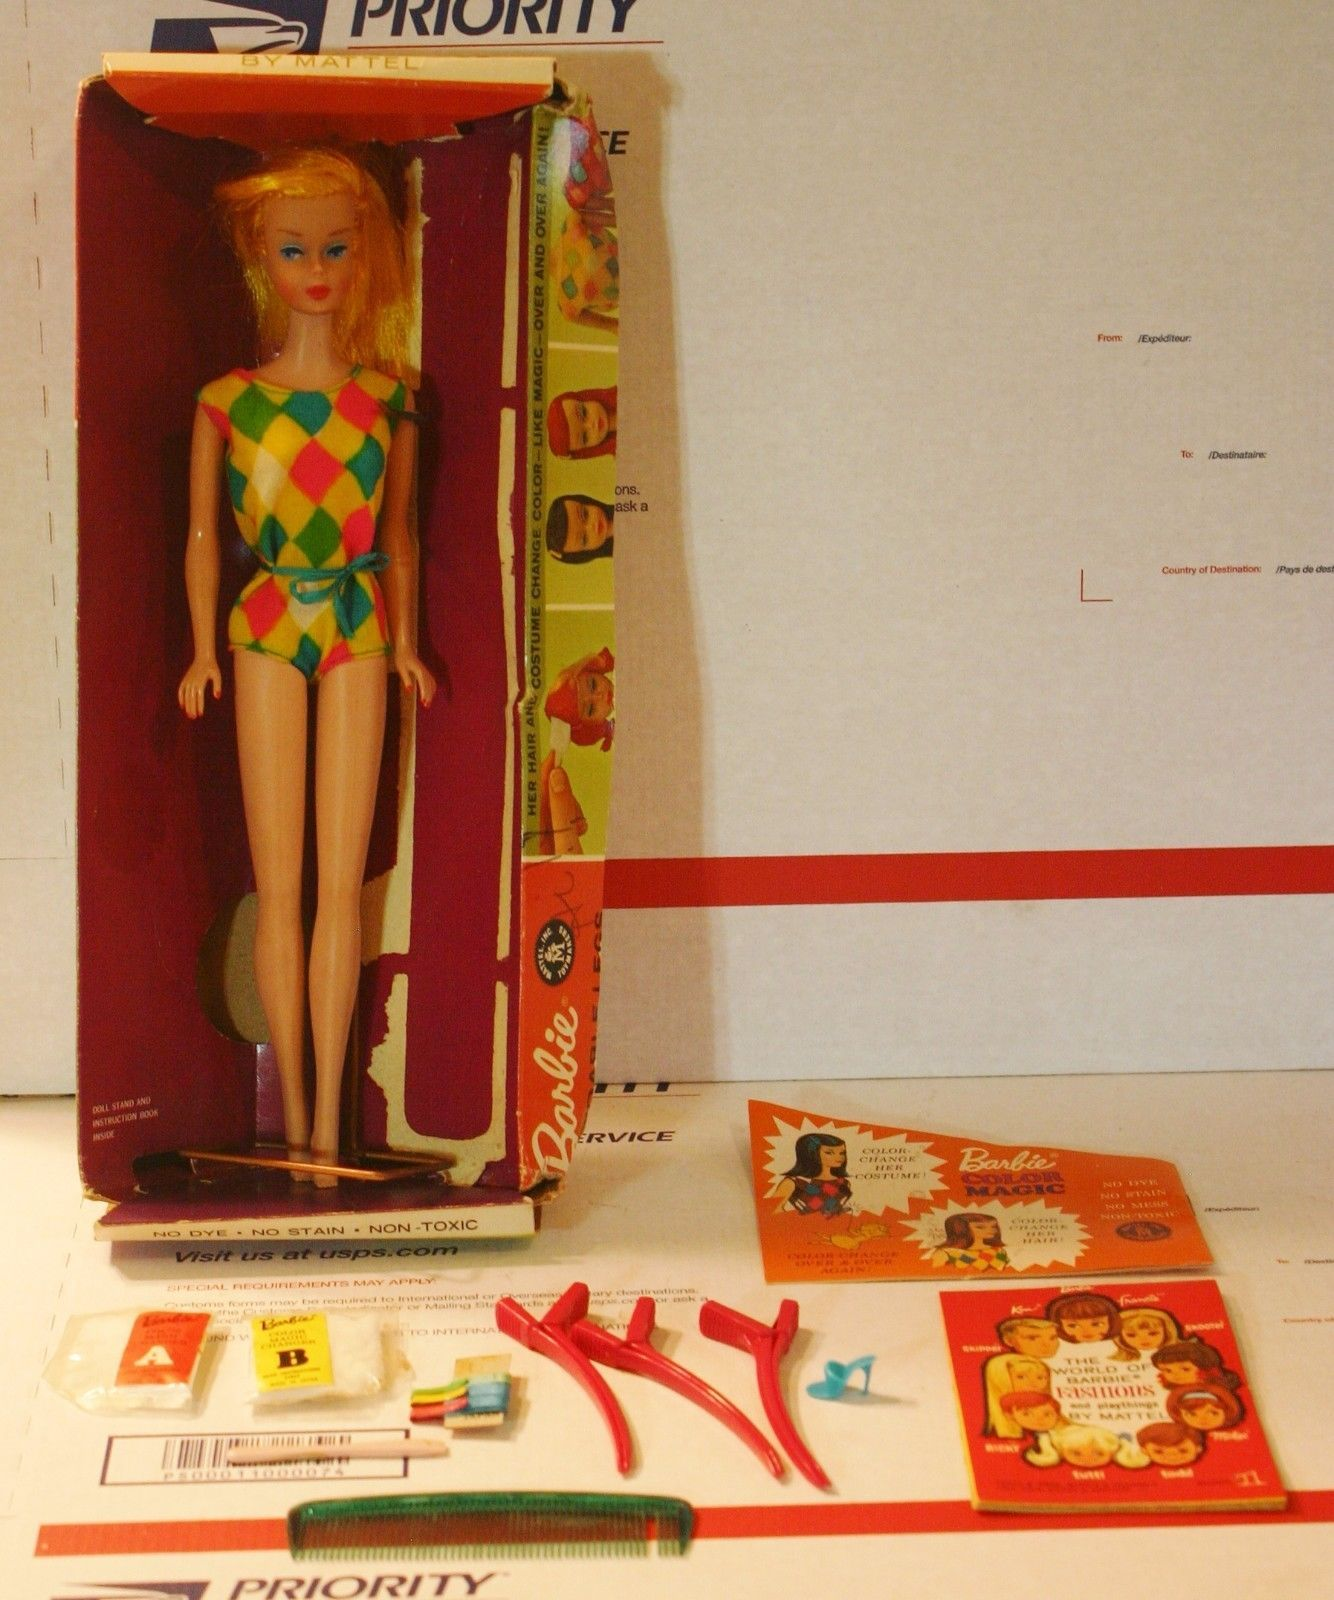 Rare Original Vintage 1958 Color Magic Barbie With Box Stand And Accessories  https://t.co/mGtnXeXkZ1 https://t.co/NlxTW6cvpL